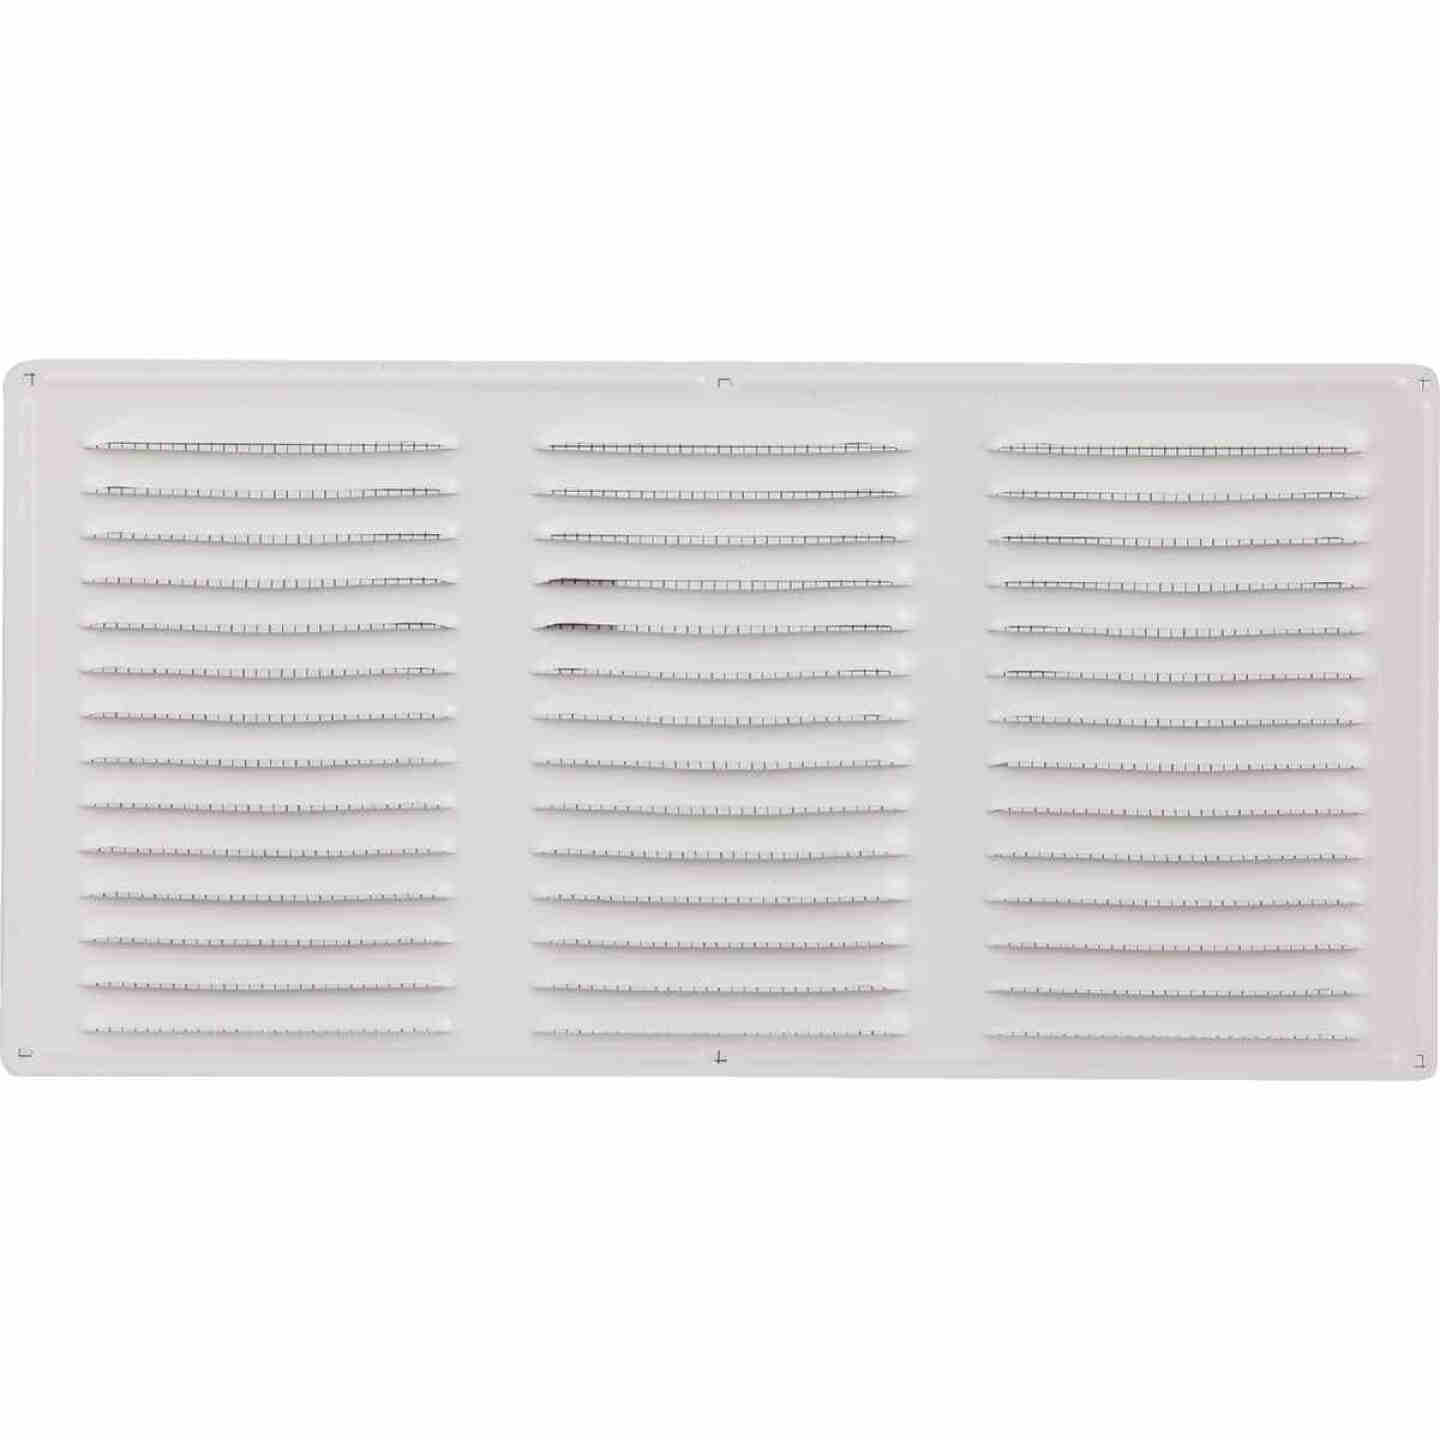 Air Vent 16 In. x 8 In. White Aluminum Under Eave Vent Image 2